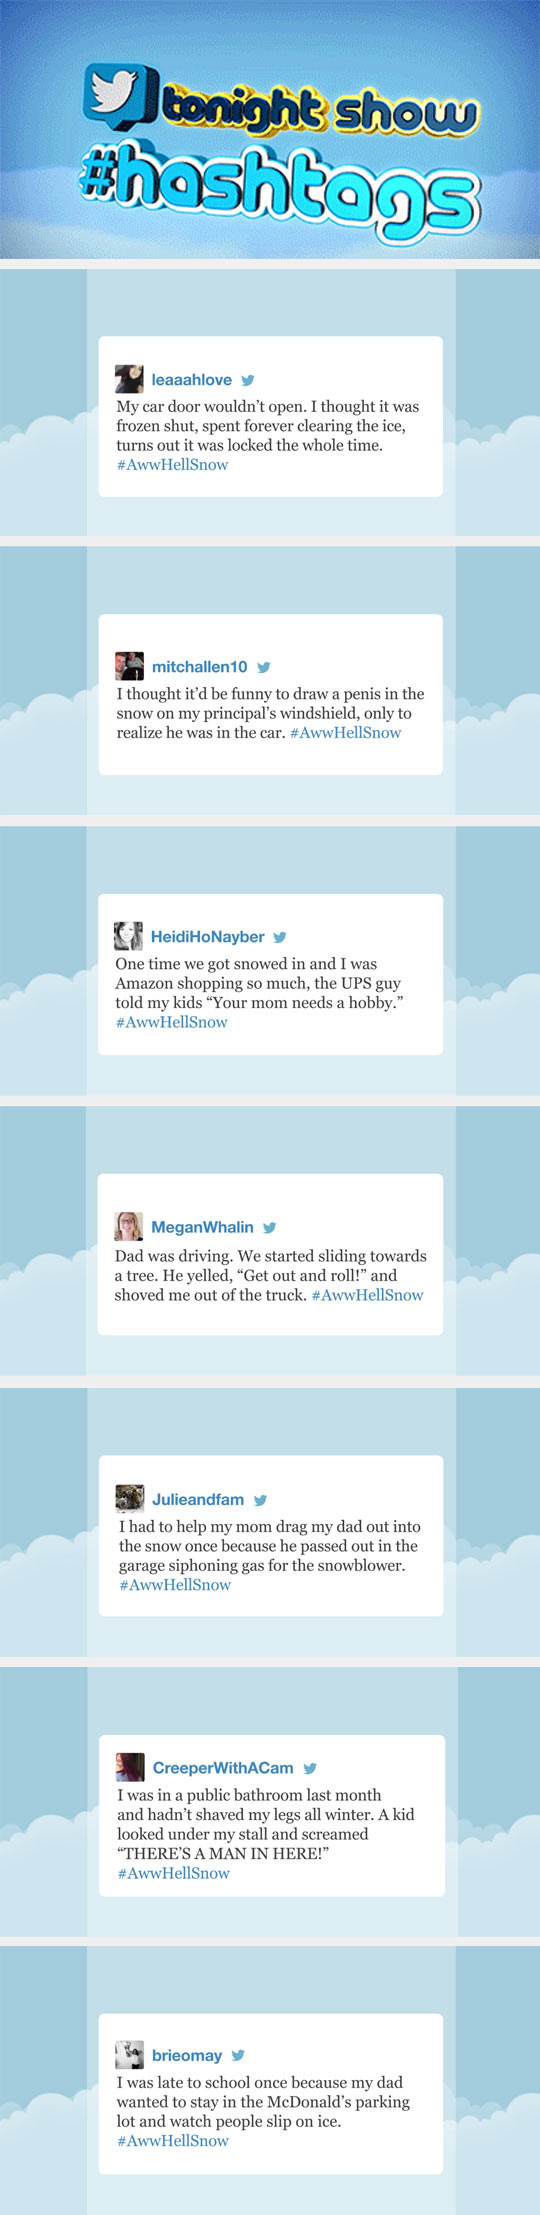 funny-hashtag-hell-snow-stories